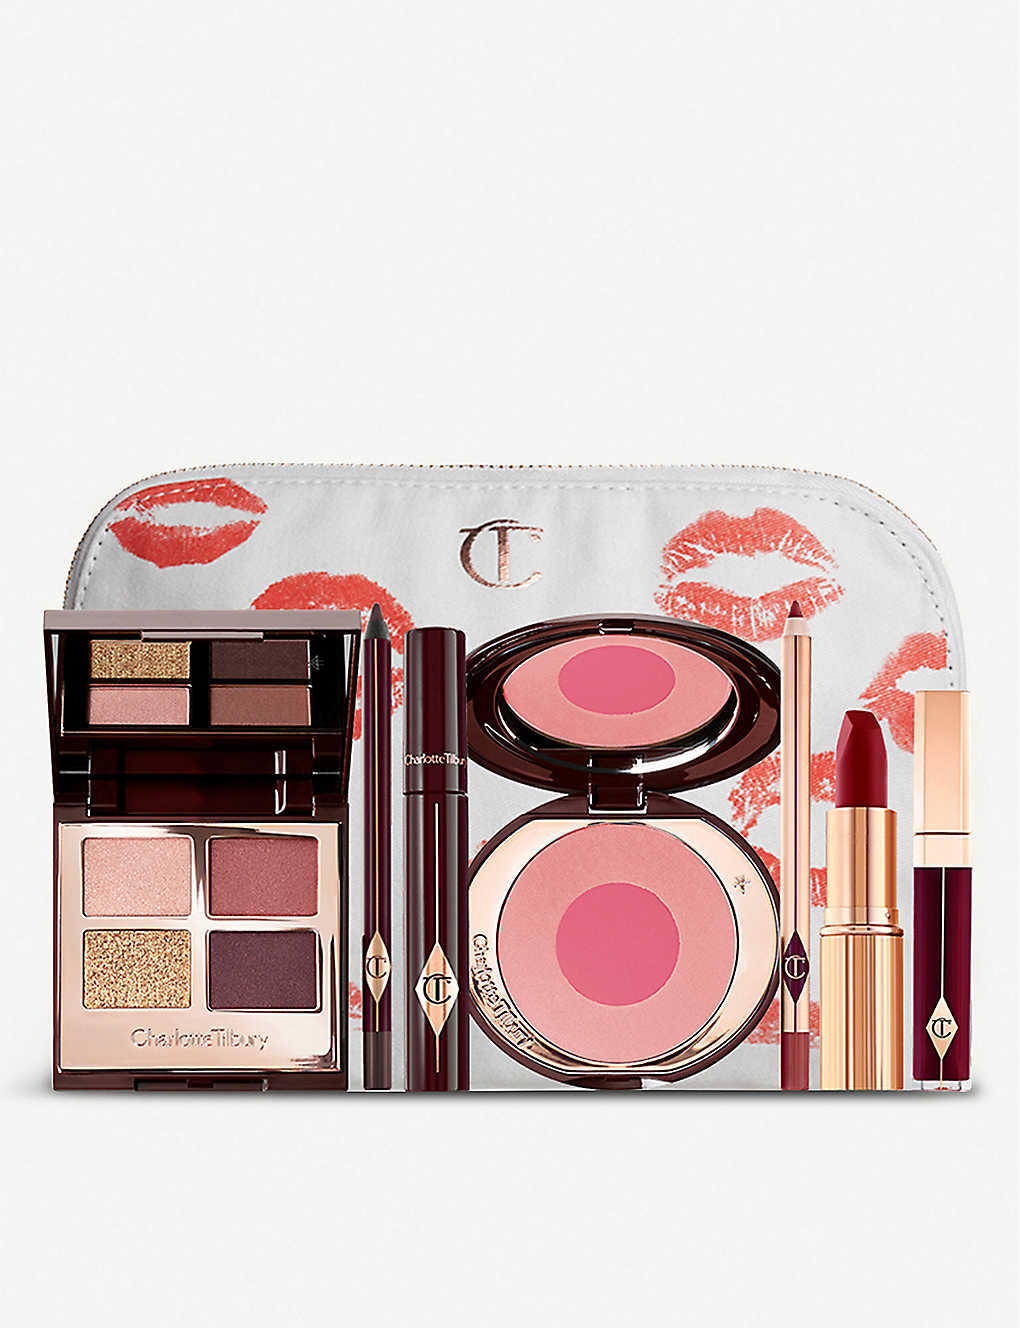 CHARLOTTE TILBURY: The Vintage Vamp Look set